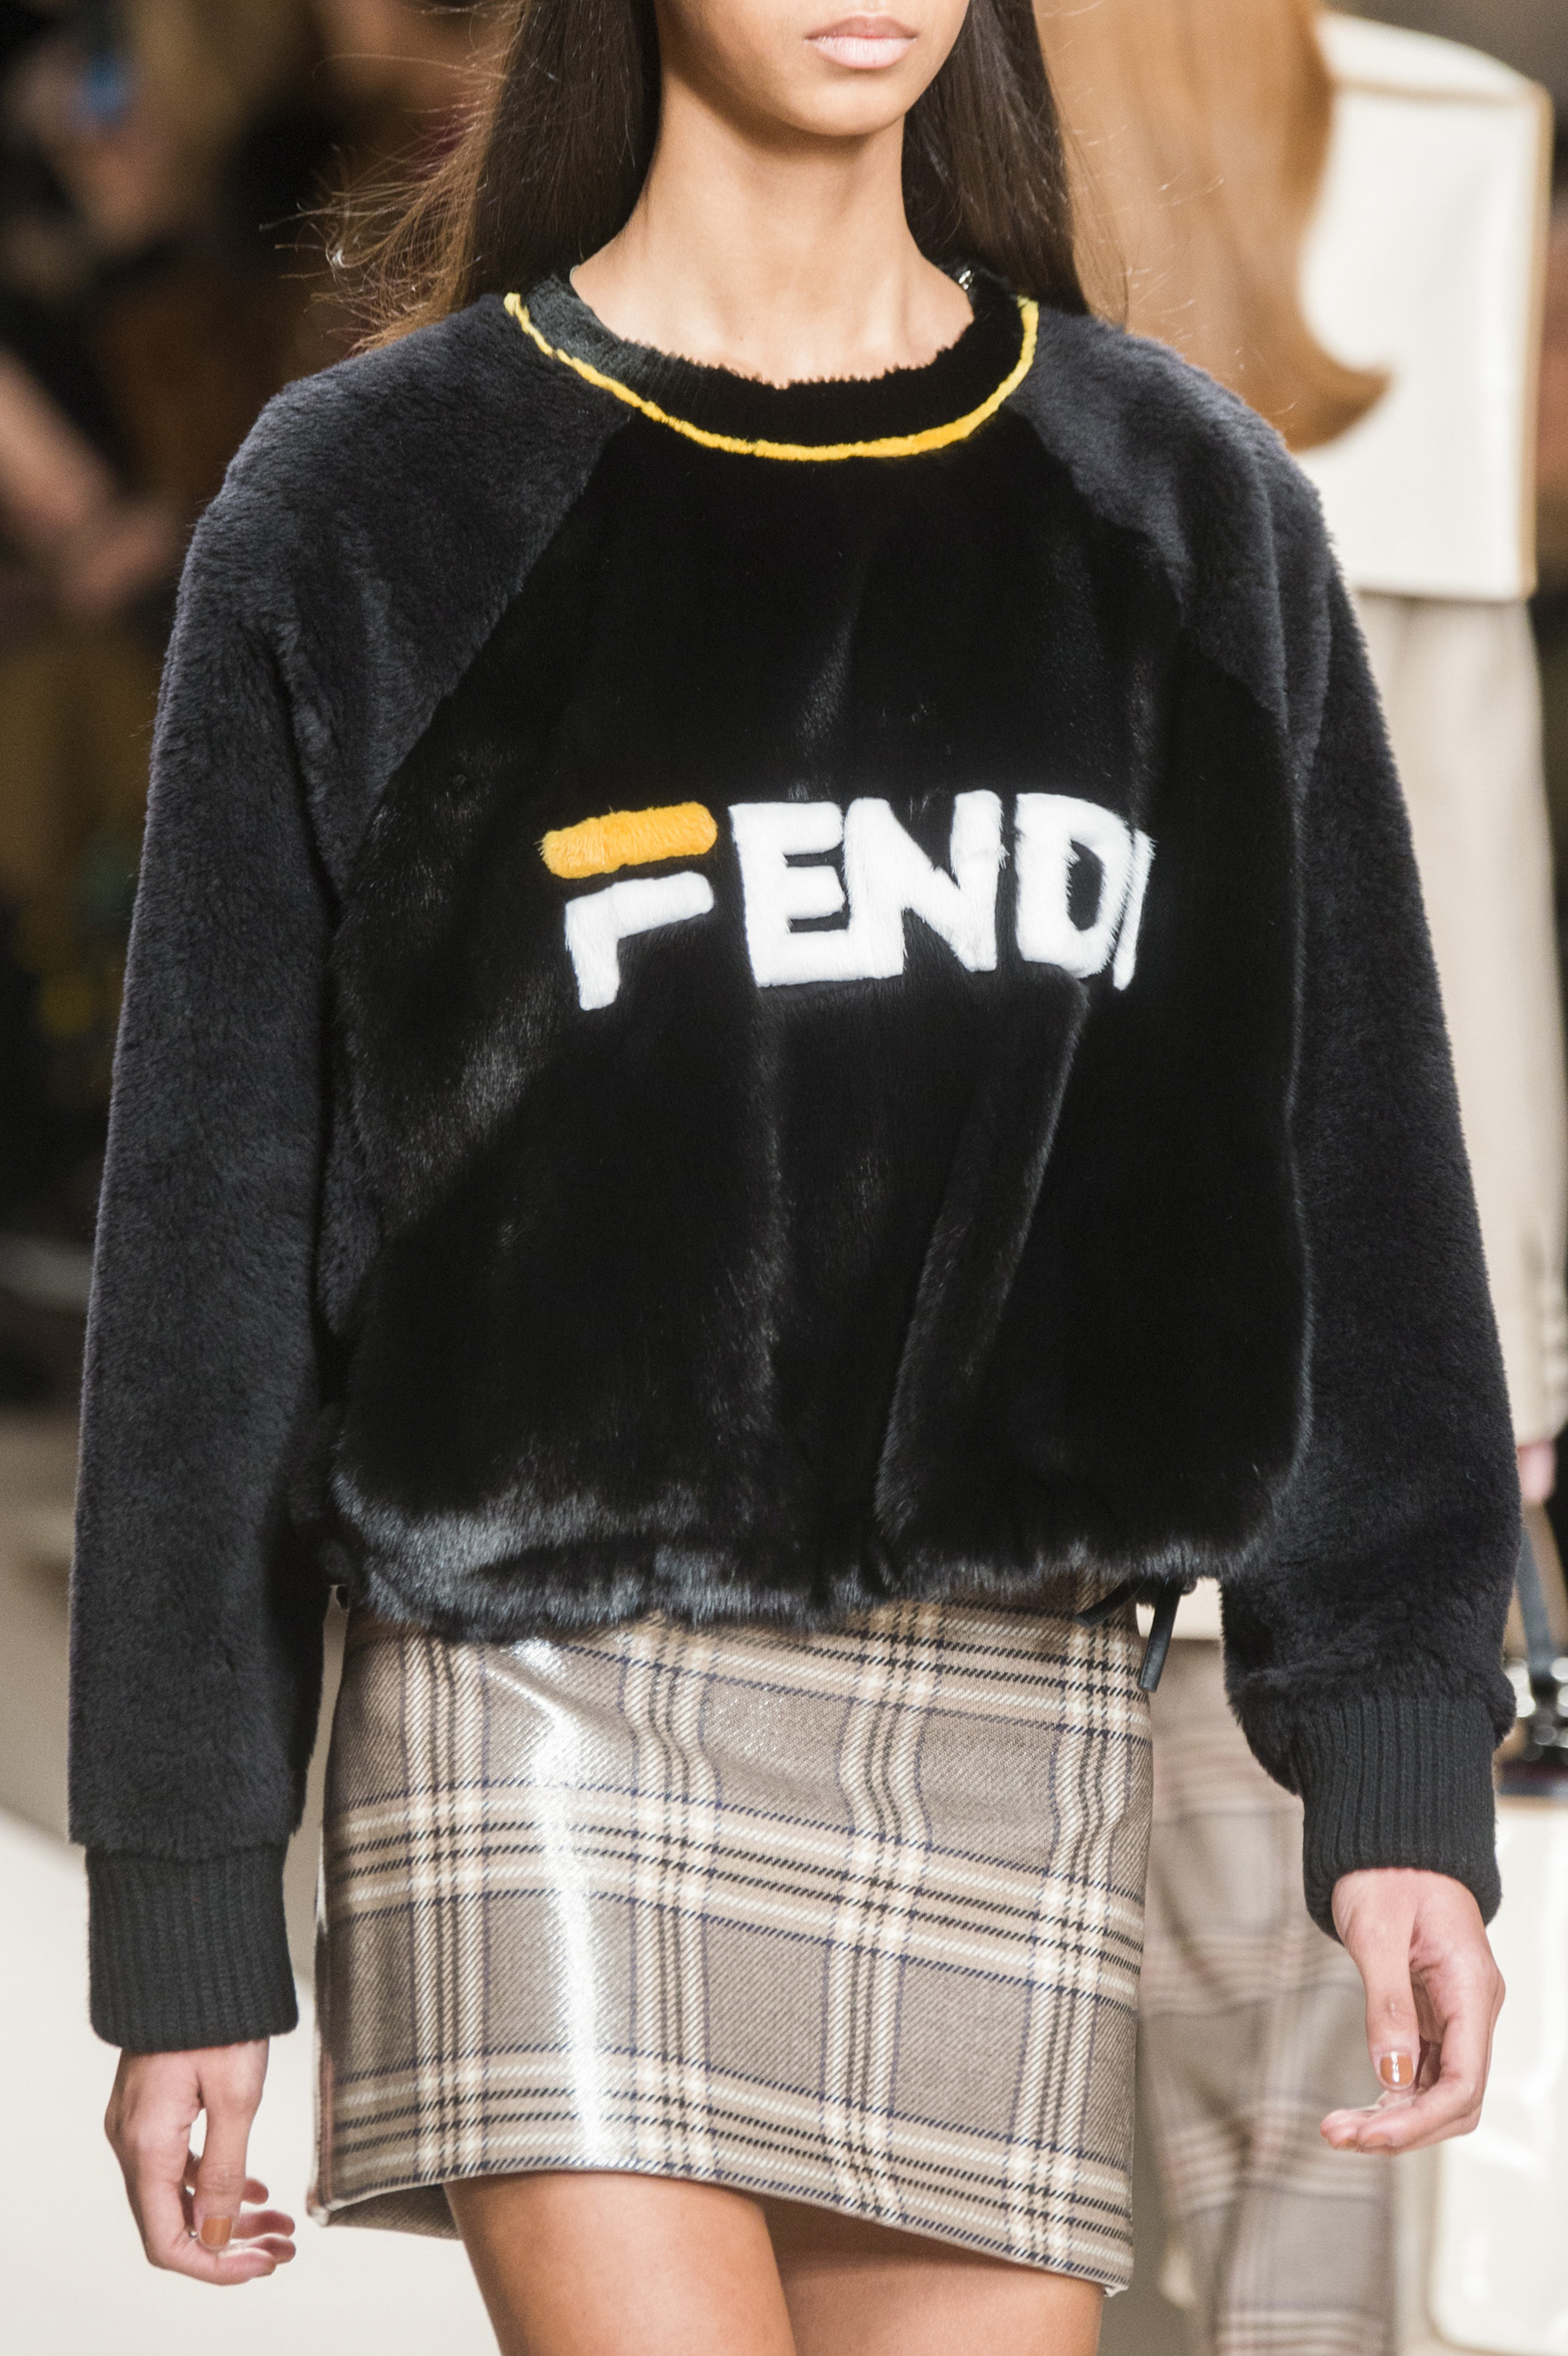 Fendi/Fila - How Artist Hey Reilly created a logo mashup that went from Virtual to Real in Fendimania